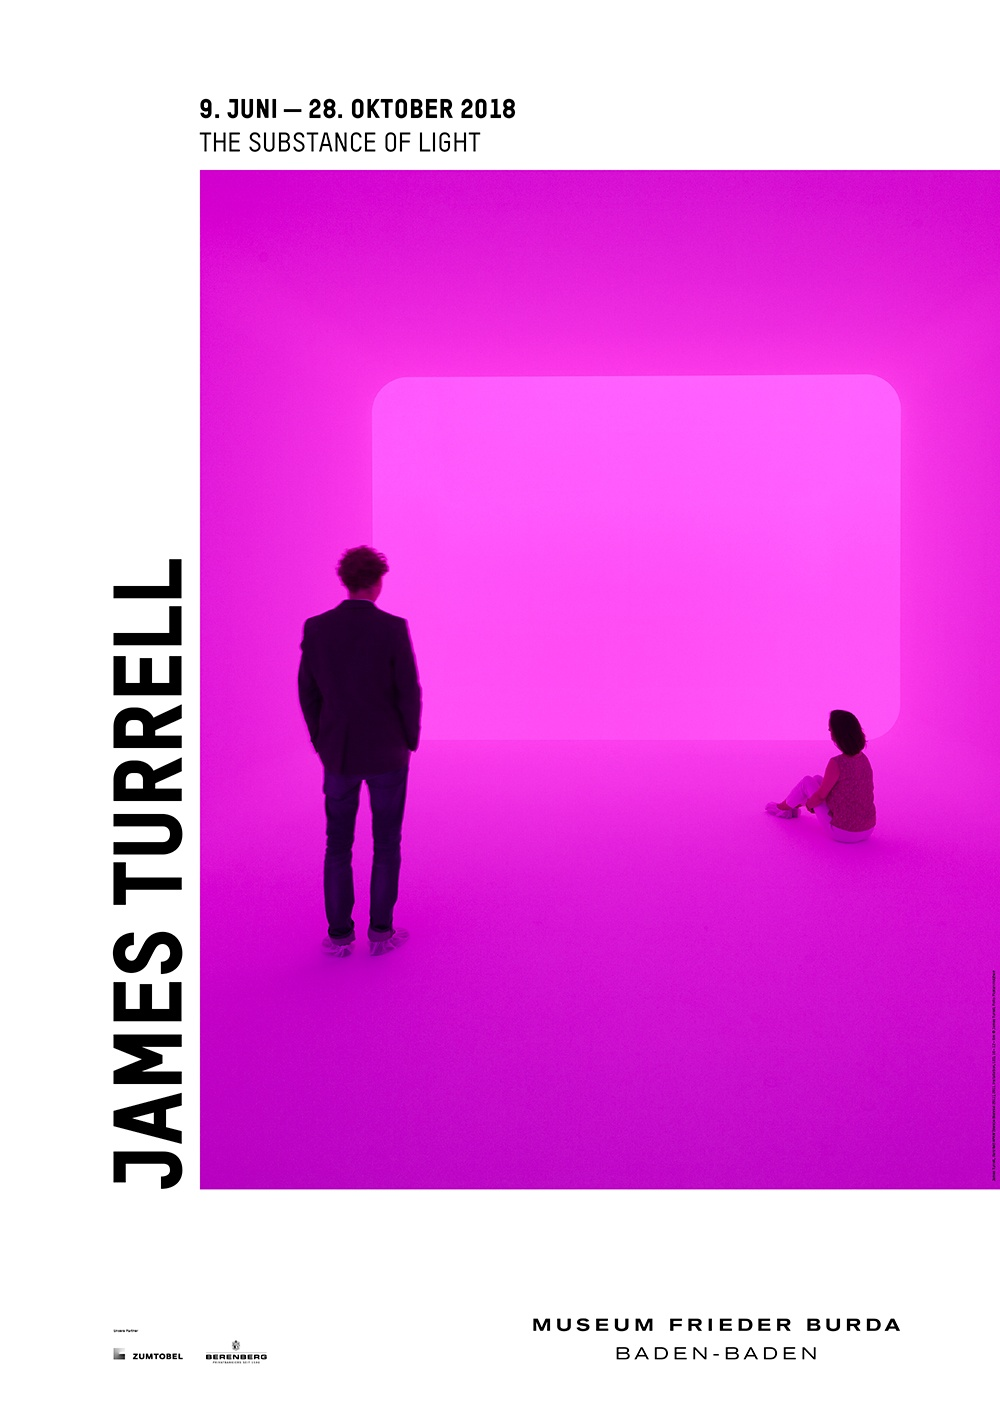 Ausstellung James Turrell museum frieder burda